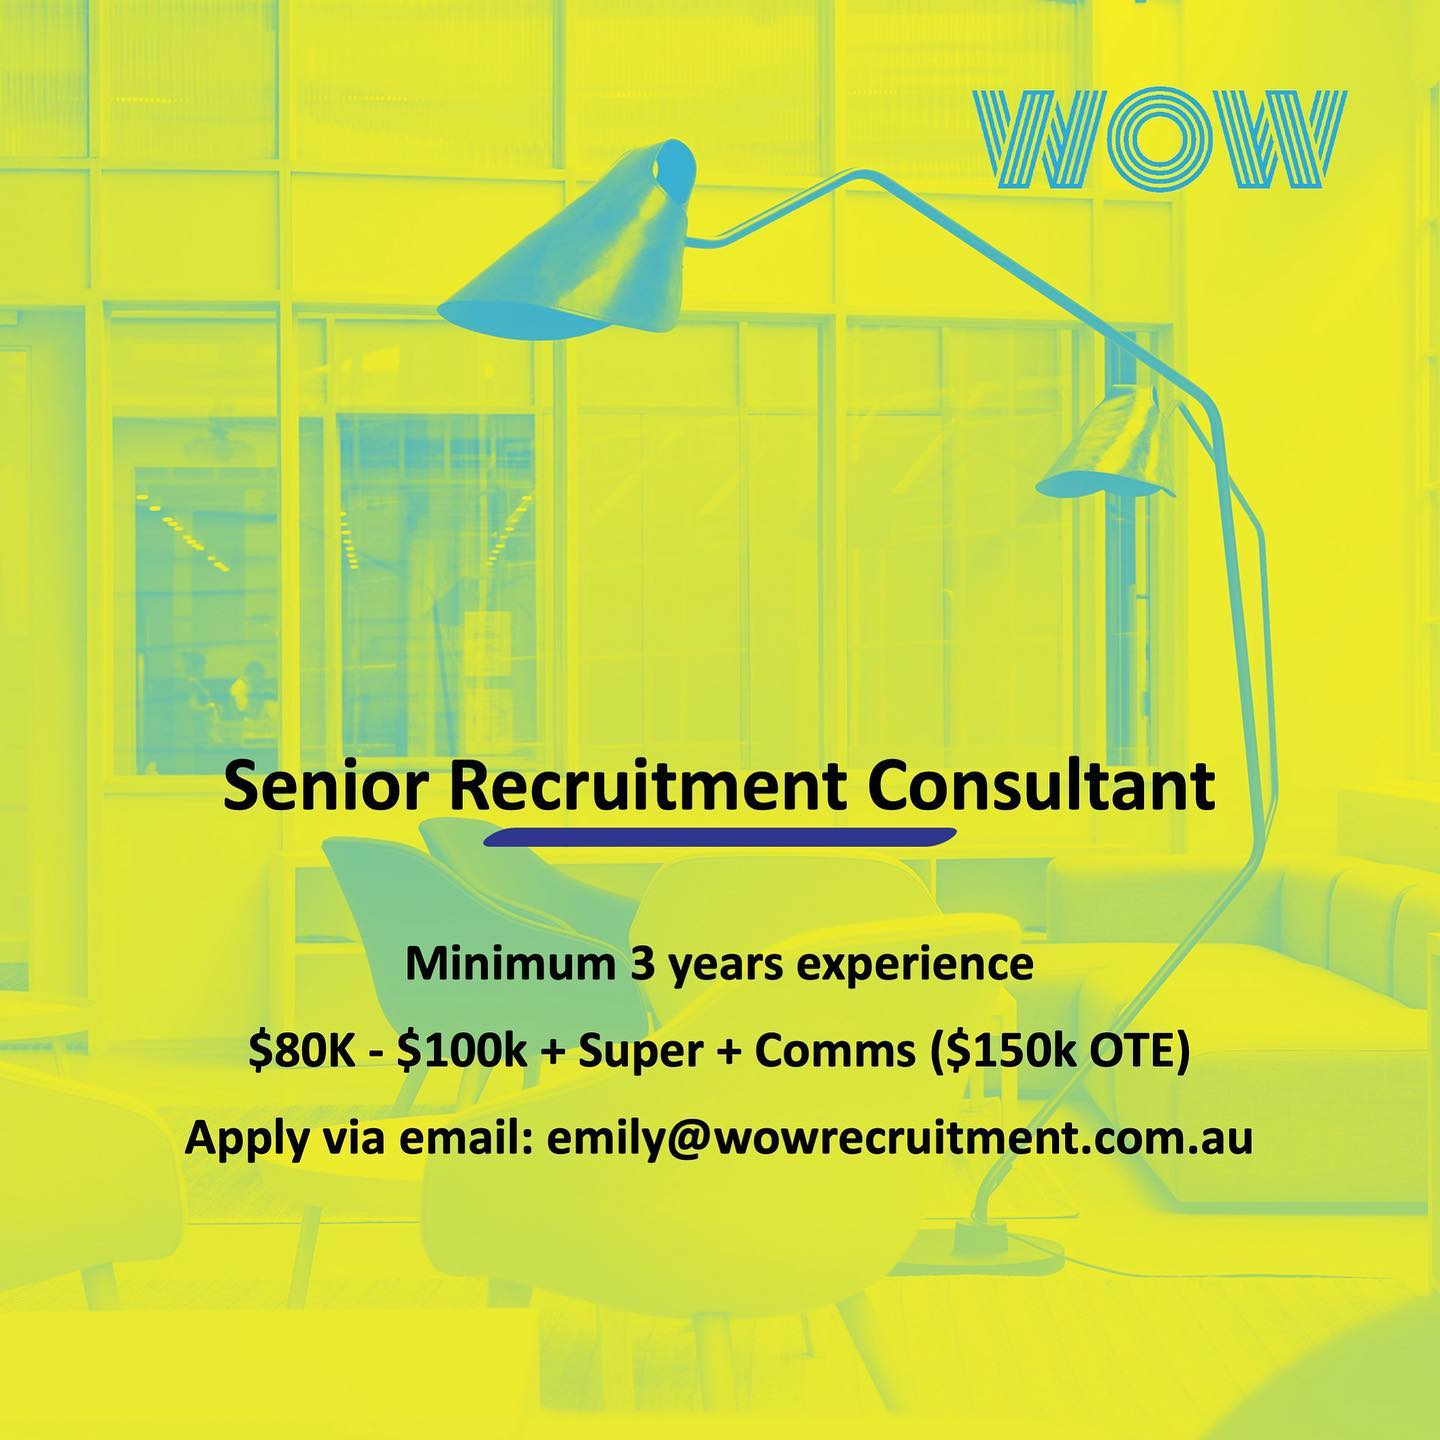 We're growing! Why not join the WOW team... 🤷🏽♀️. At WOW we've always nurtured soft skills. Critical thinking, curiosity, great communication and empathy - when married to natural talent - are a compelling force that make a truly great work place. That's what working at WOW feels like - it's a supportive, empowering, sky's-the-limit kind of vibe where consultants and their input are truly valued. .We want to see how far you can go - and we'll give you the support and resources to get there. . So if you're a senior recruiter looking for a fresh start, let's go! Let's craft your career together. . #workhappy #recruitmenthappy #dowhatyoulove